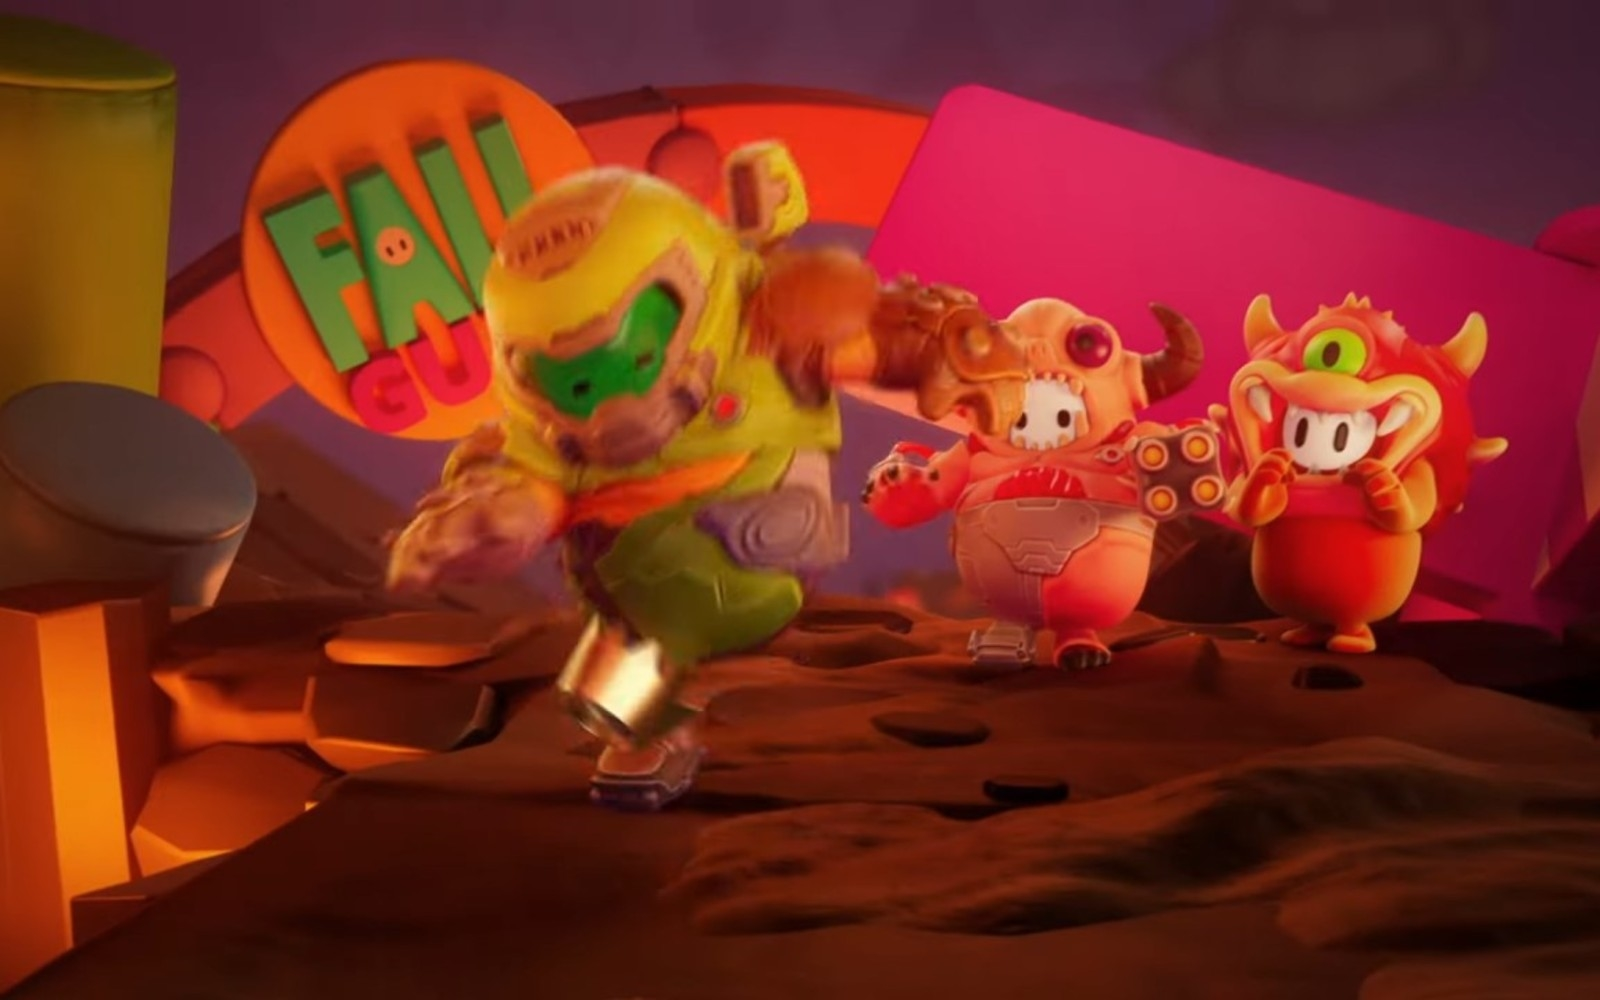 'Fall Guys' will add 'Doom' costumes on January 12th | DeviceDaily.com